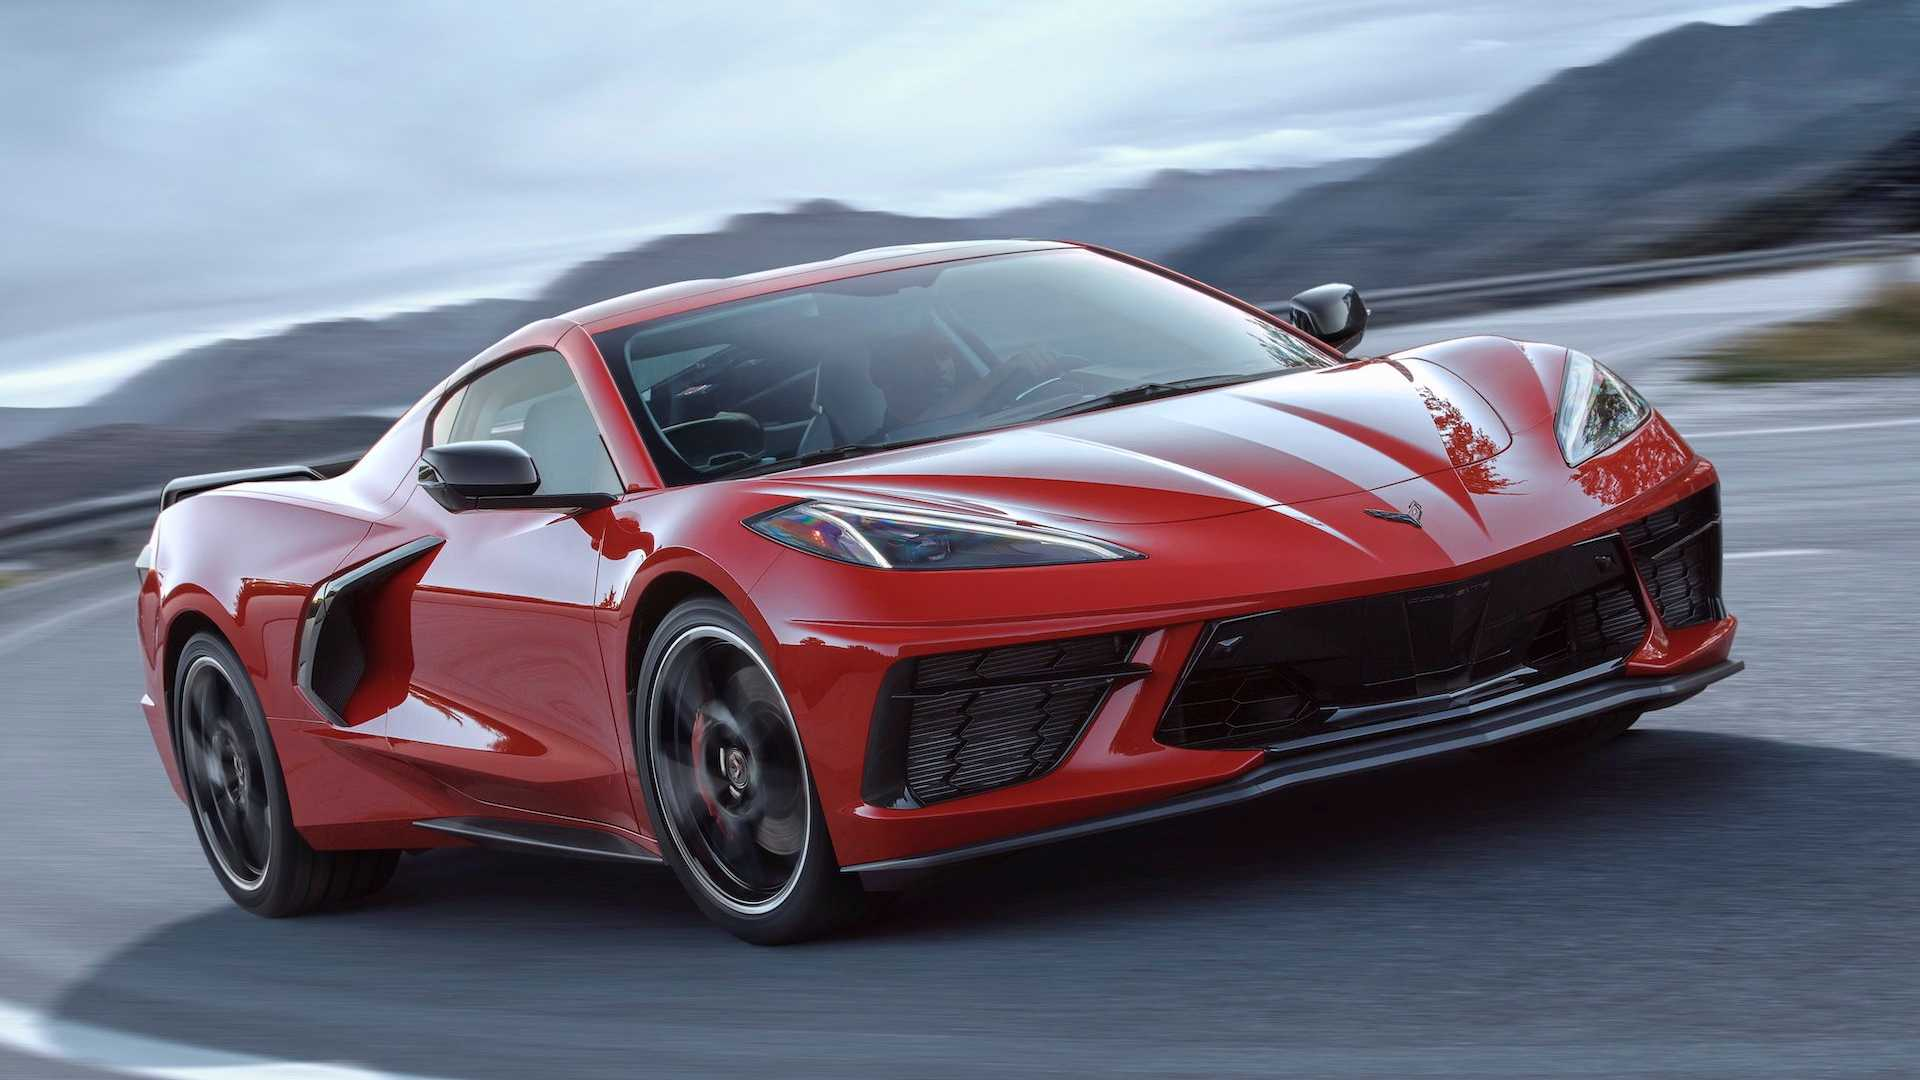 The eighth generation of the Chevrolet Corvette has already experienced something like a revolution when it switched to the mid-engine layout; now it looks like the iconic sports car will be getting an all-wheel drive system thanks to dual electric motors on the front axle.